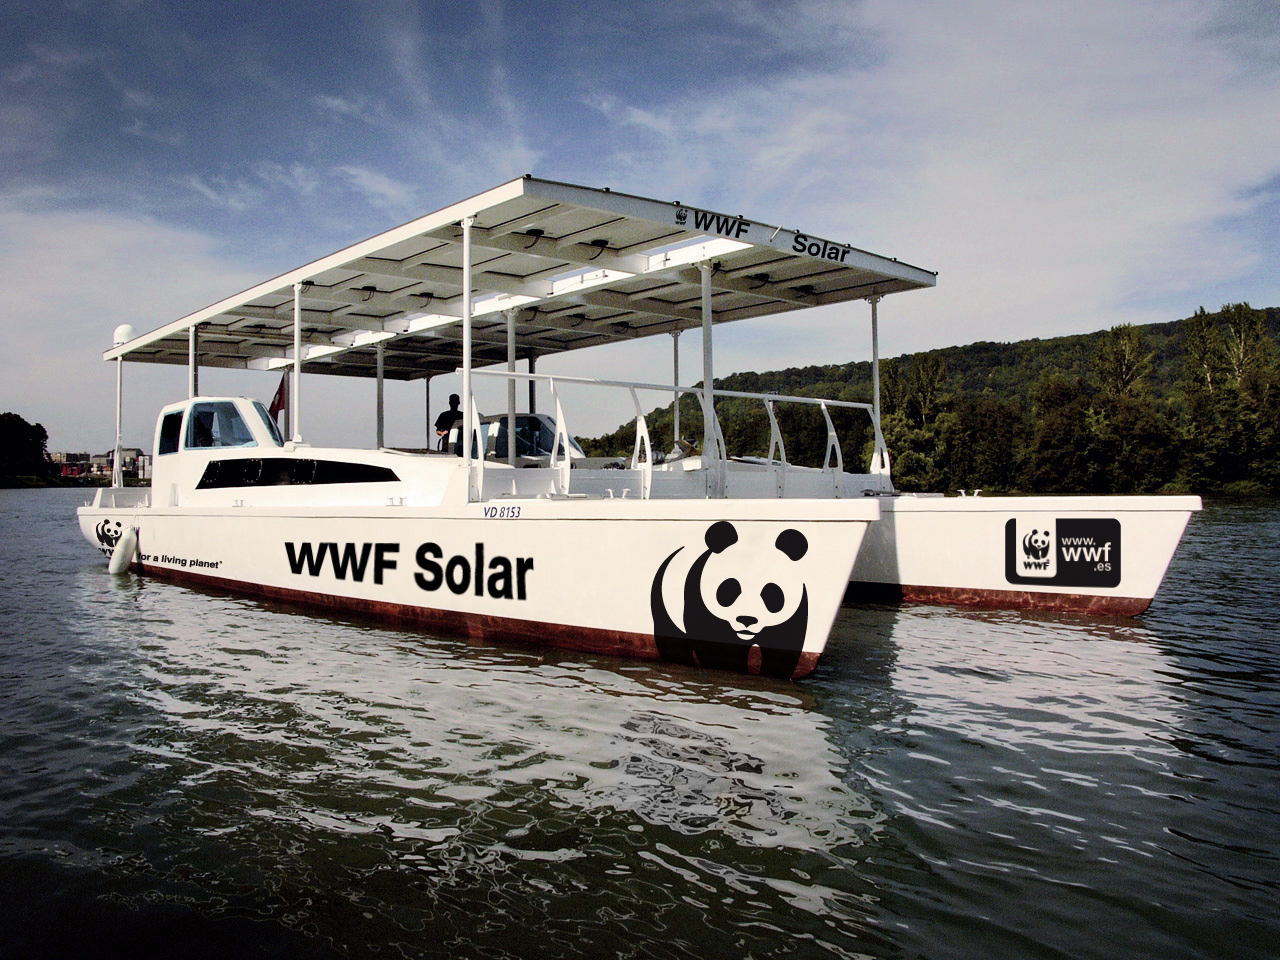 The Solar will visit some of the Mediterranean's most important costal areas over the next 3 summer